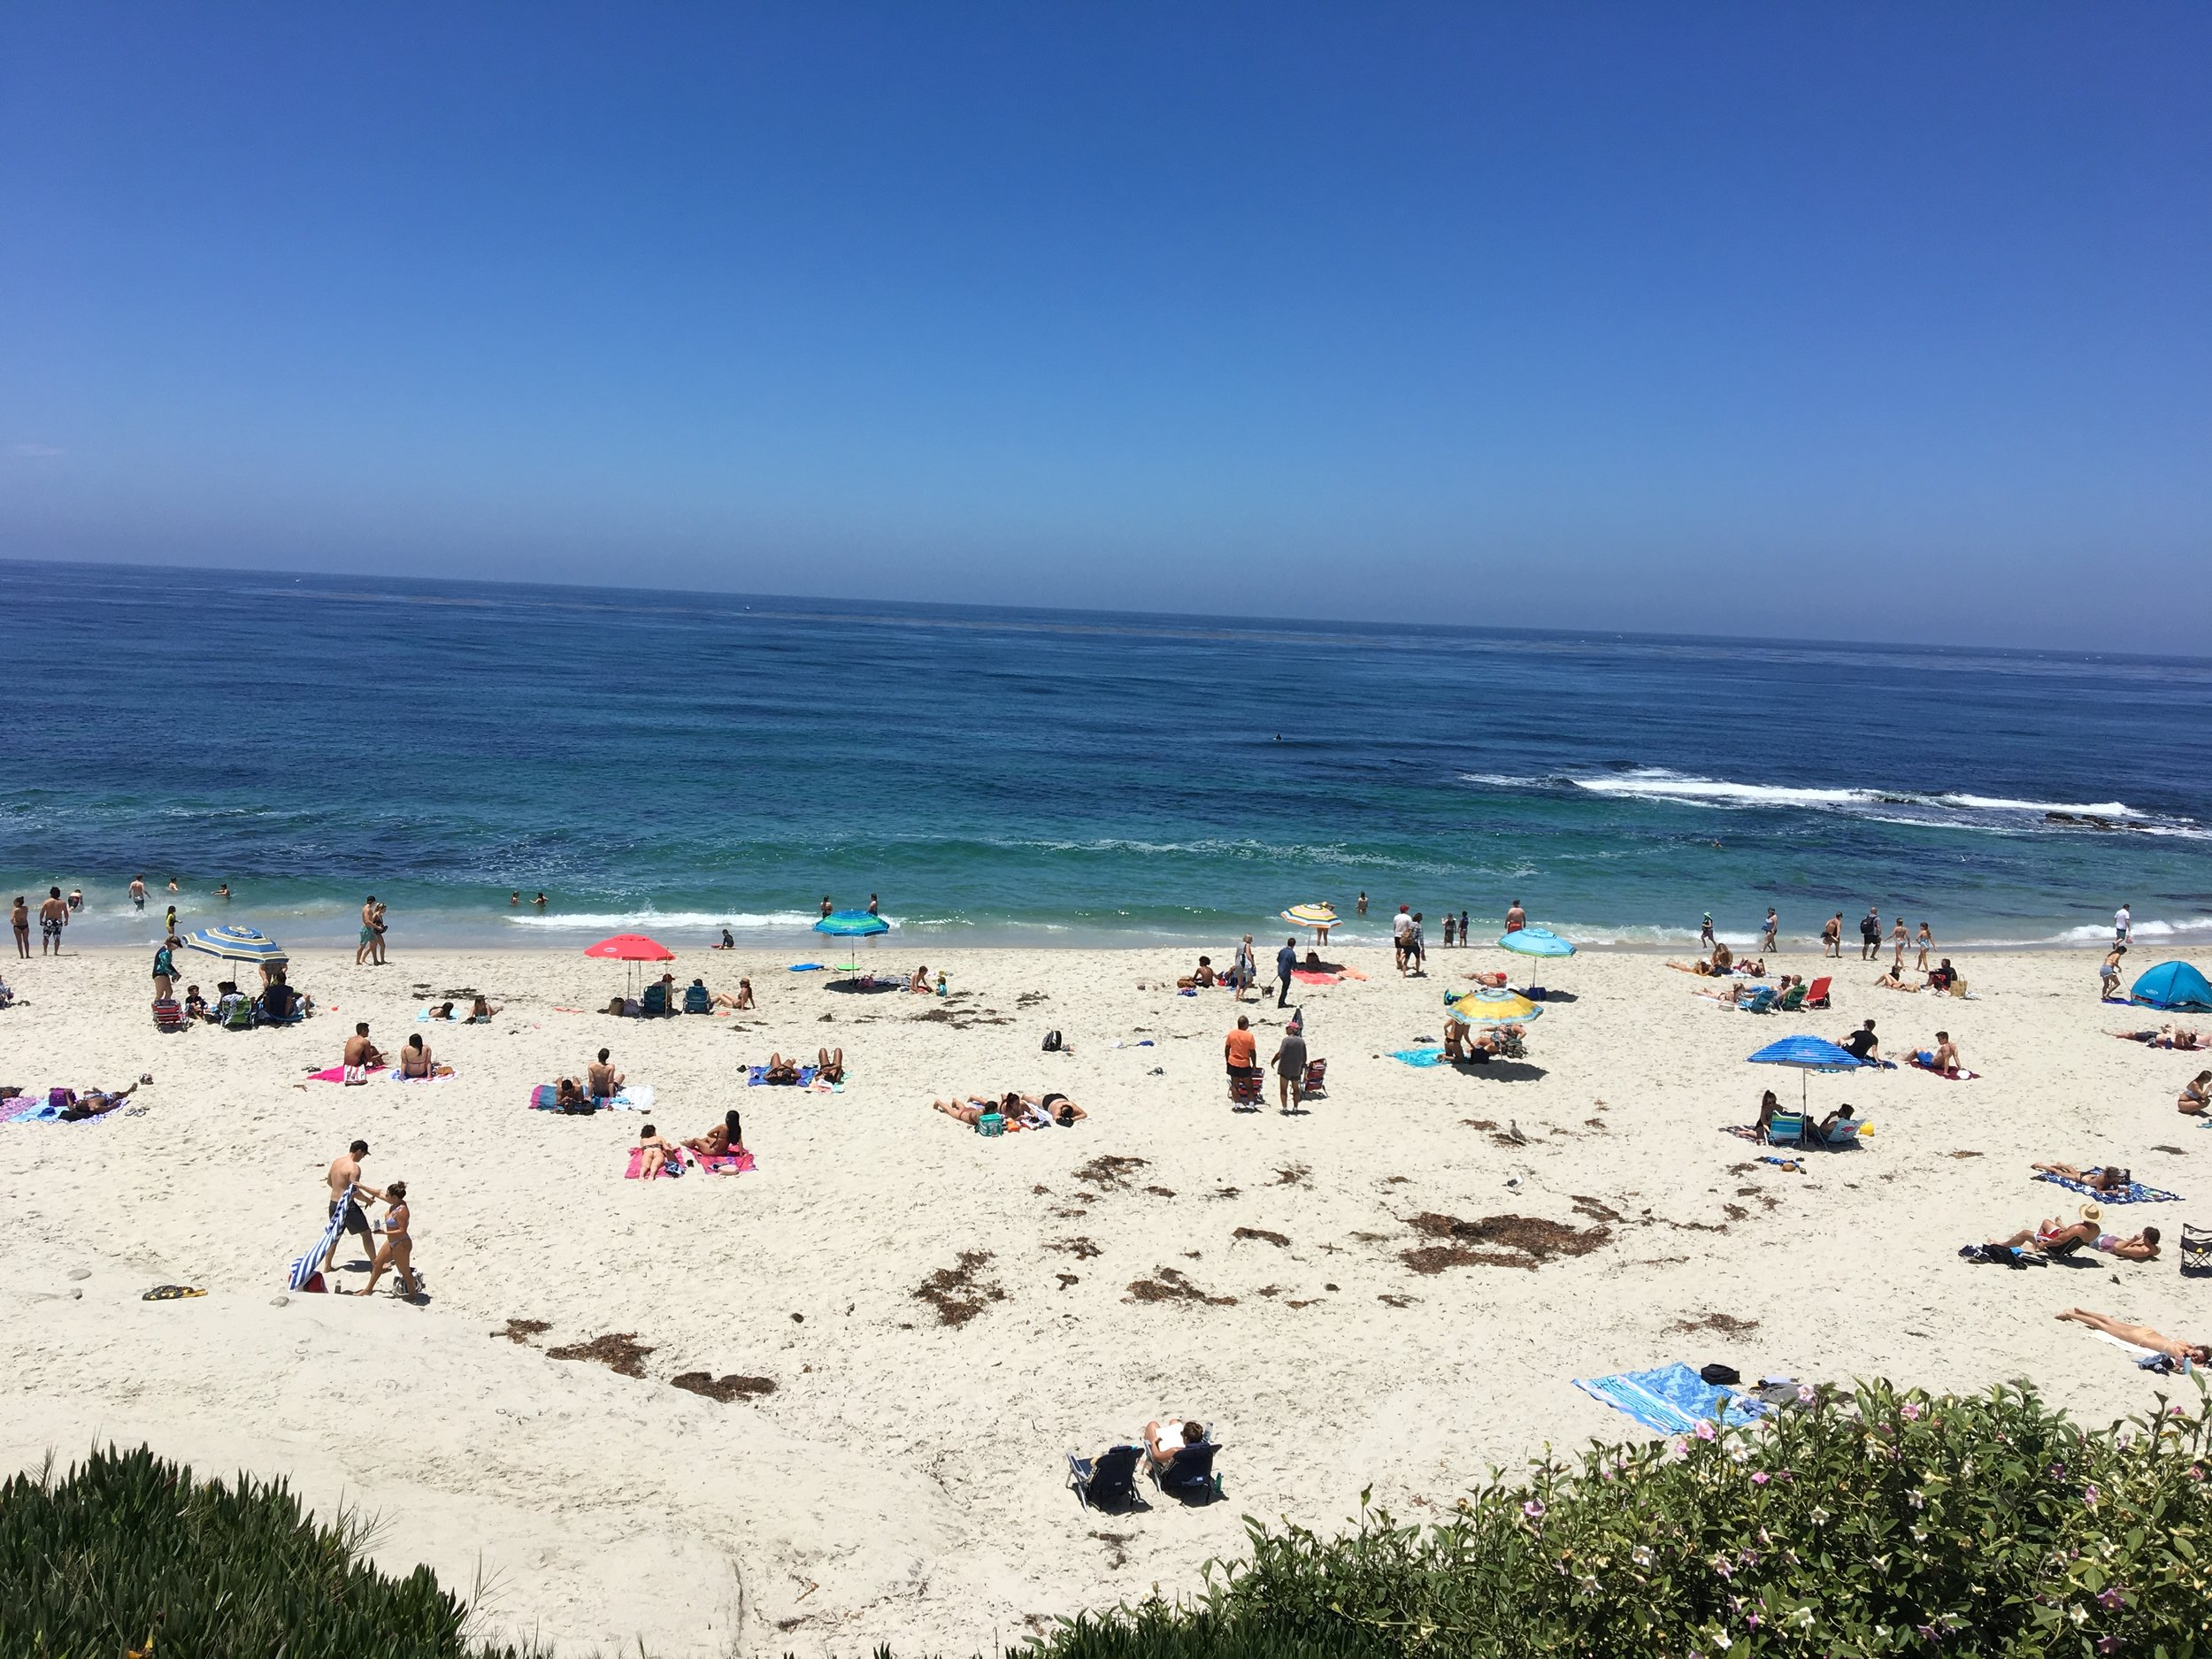 You can find me here at the beach in La Jolla for the foreseeable future. Photo by Ranger Holly.